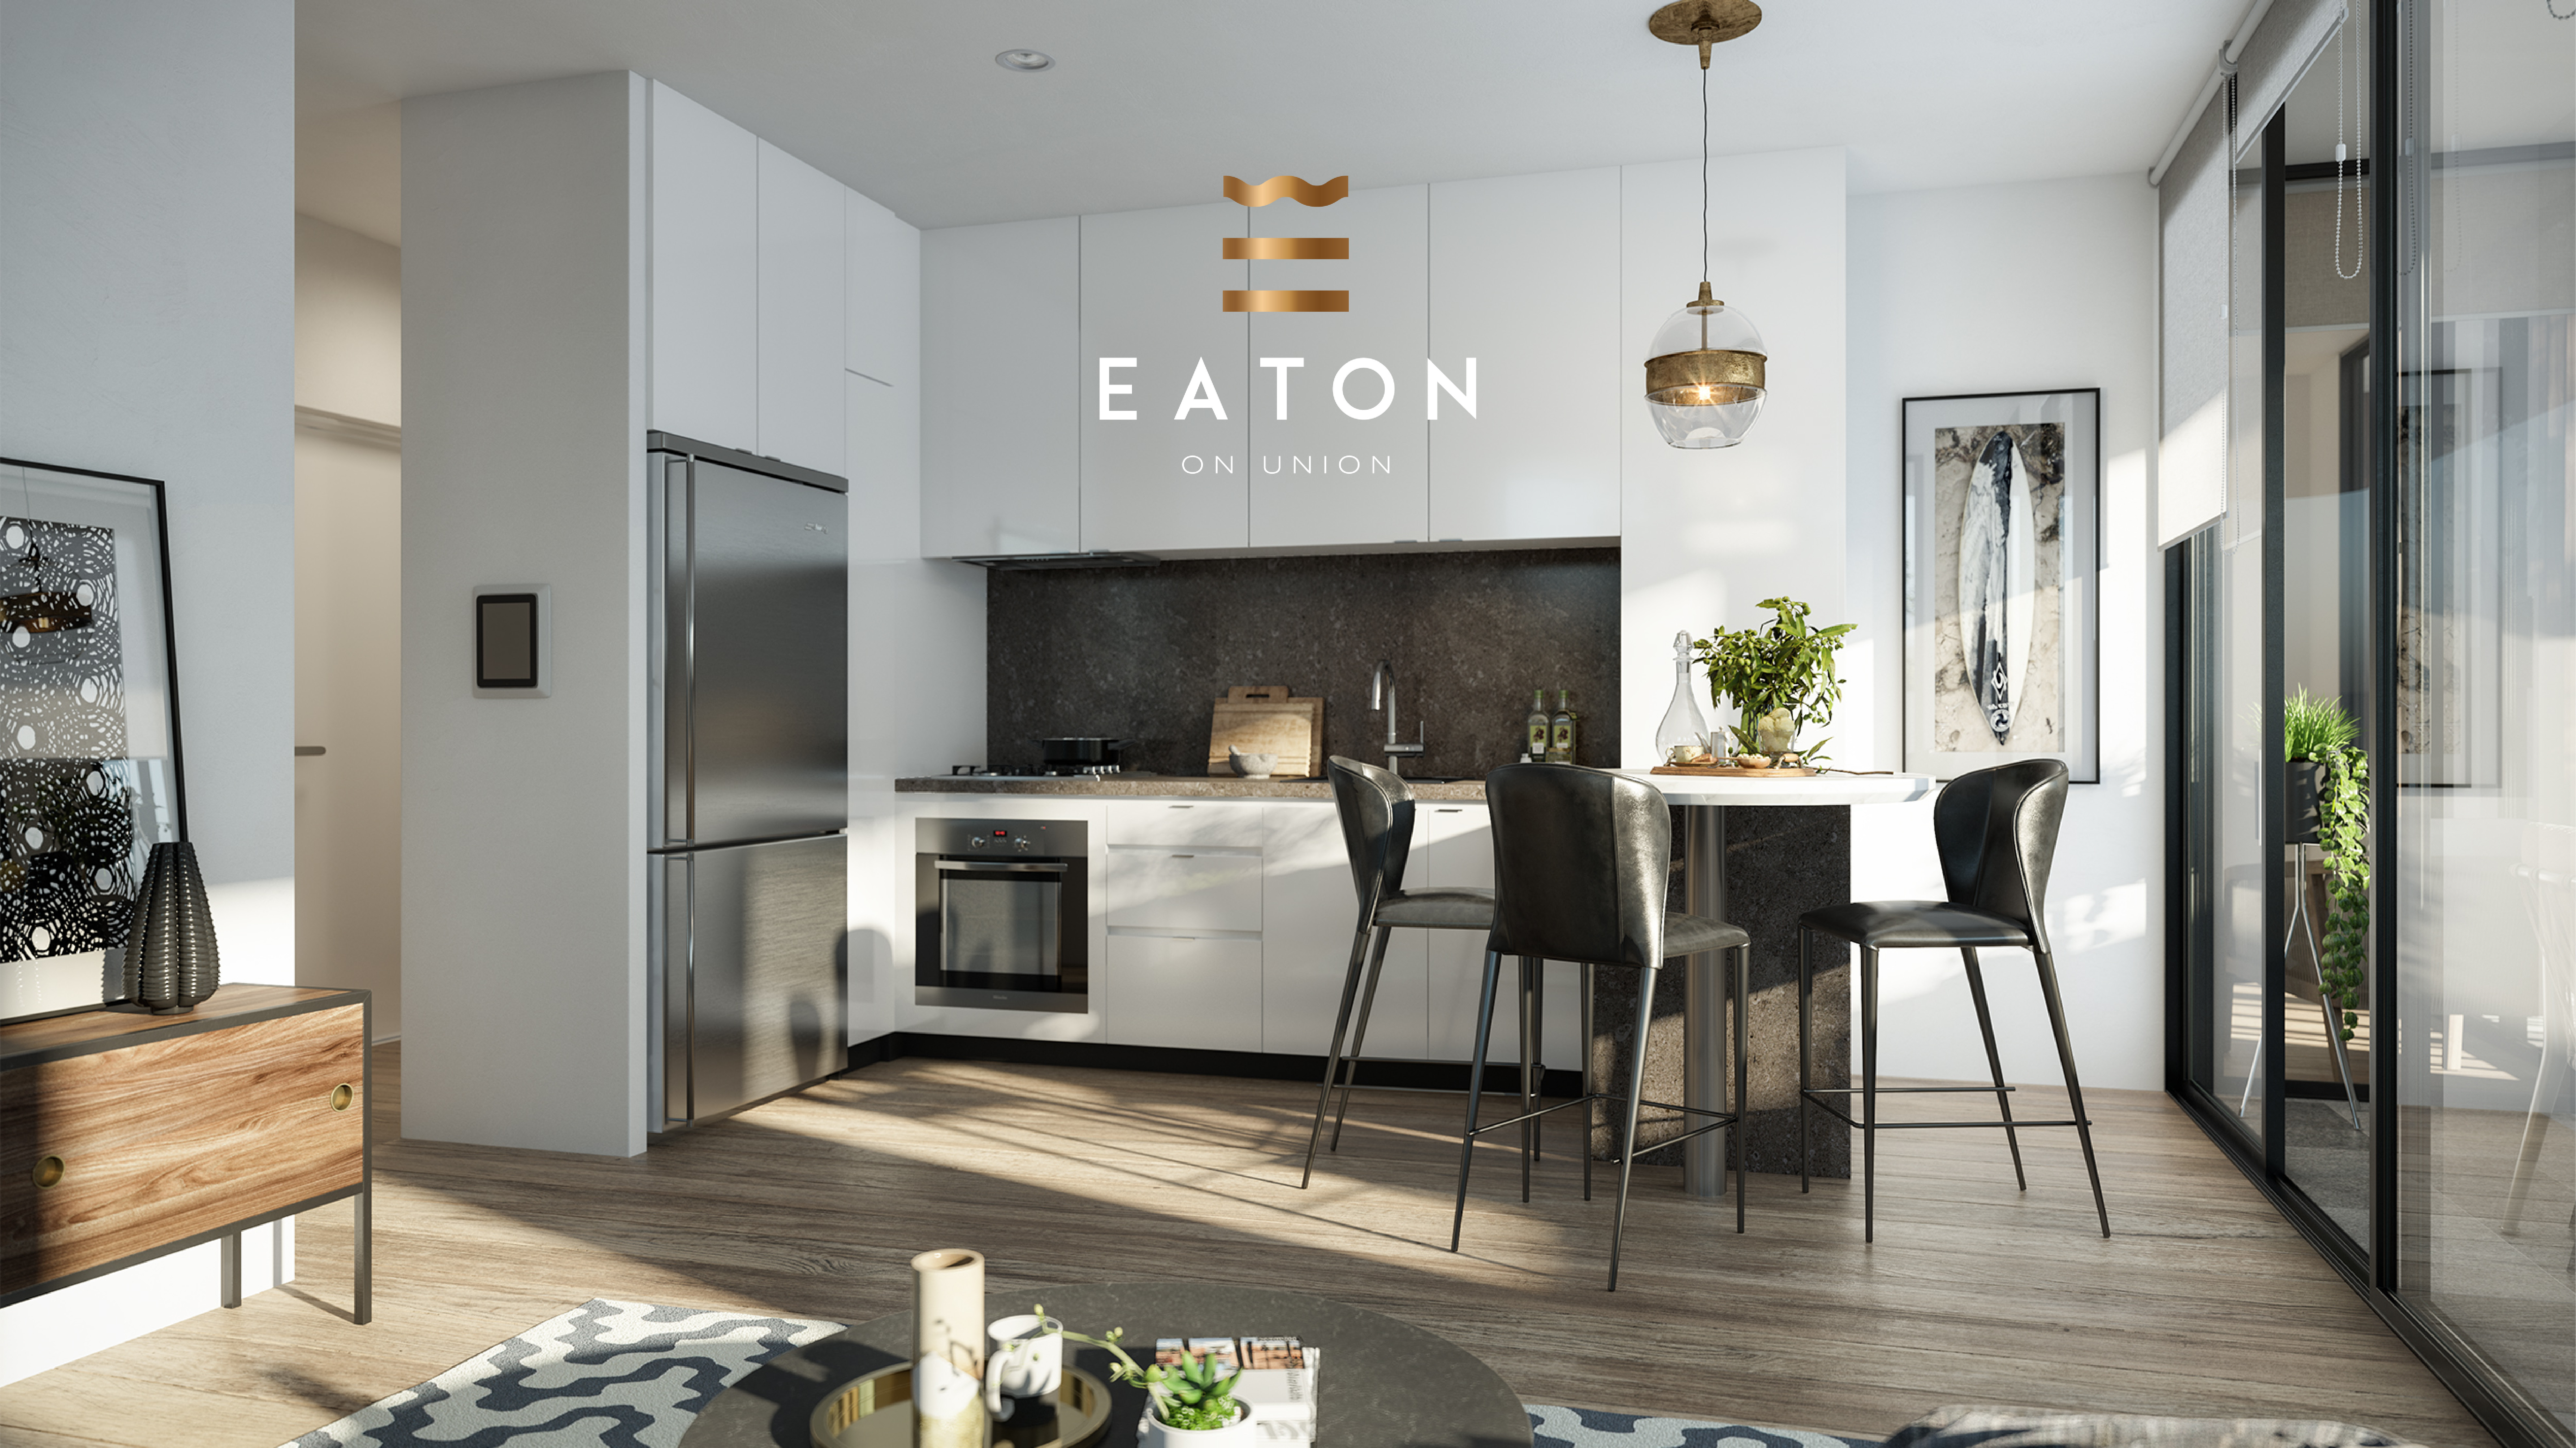 Eaton on Union | Wickham